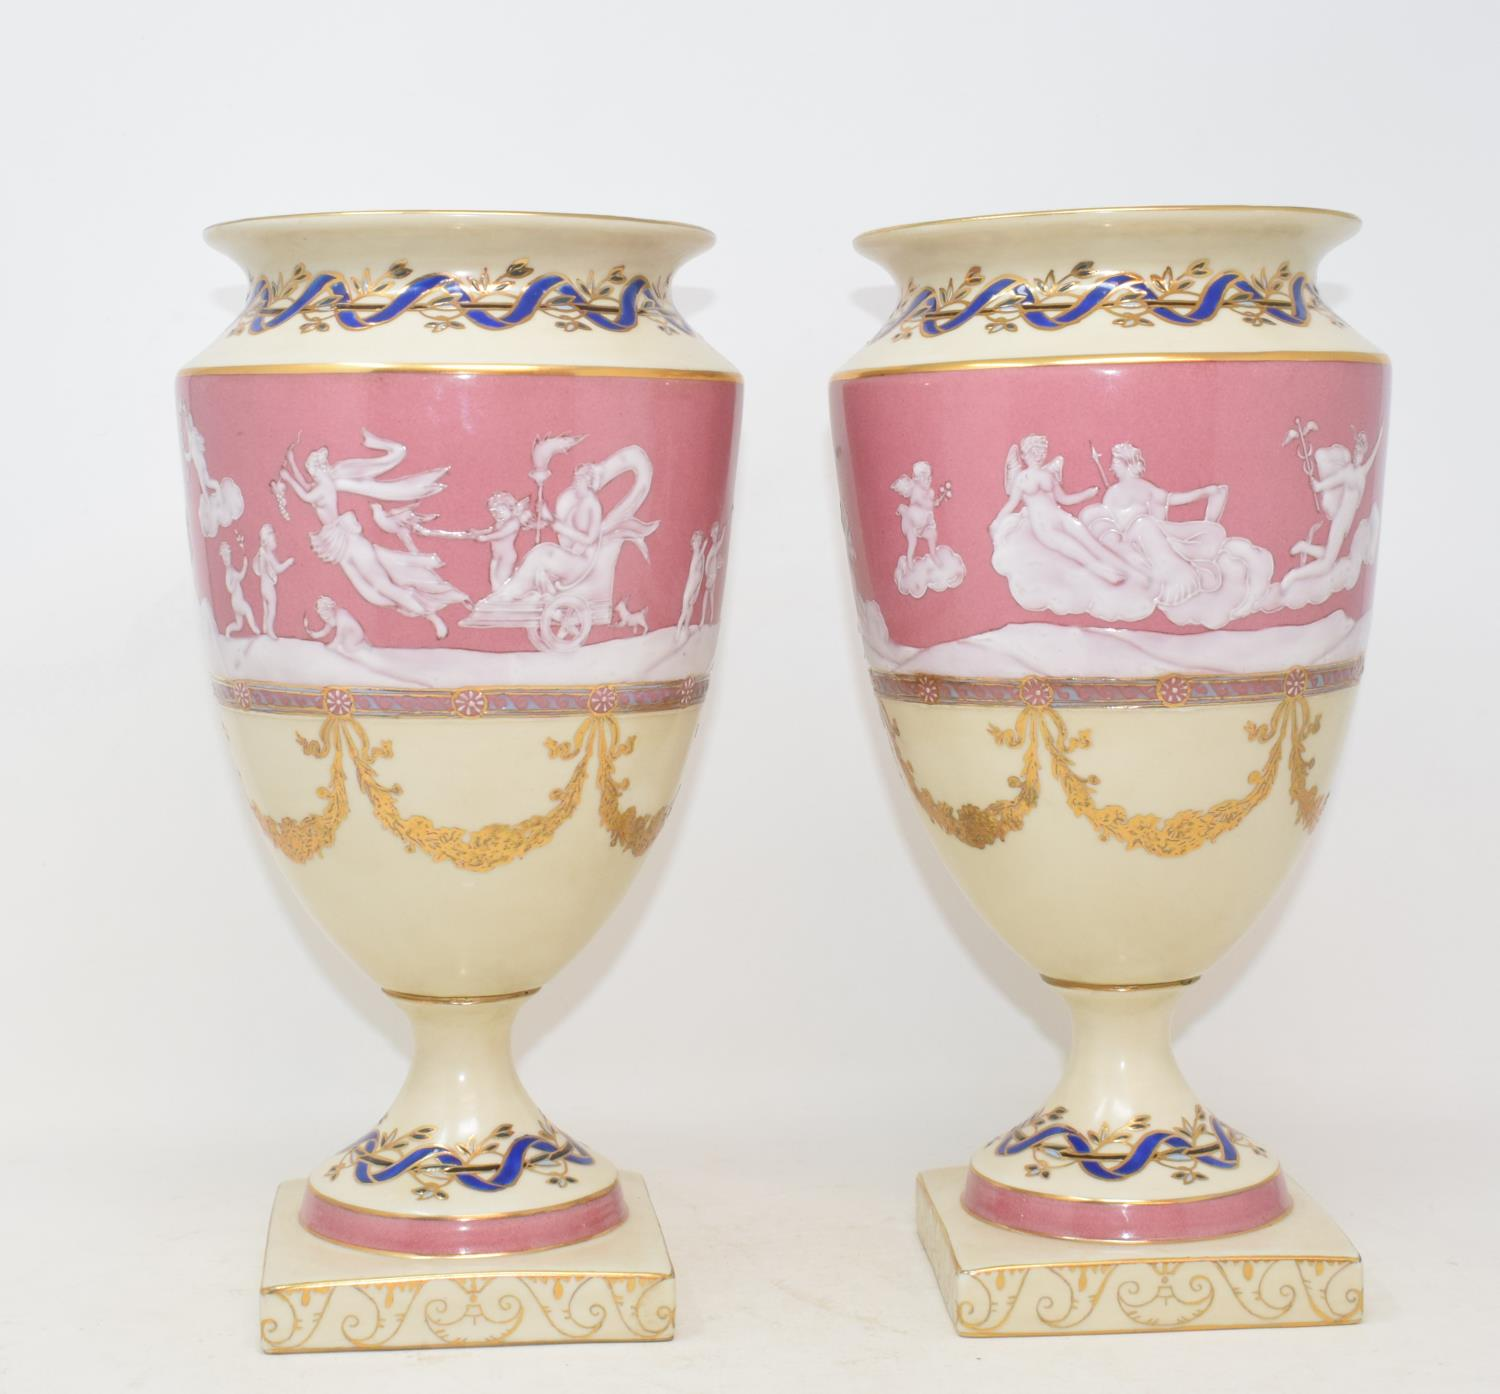 Lot 12 - A pair of pate-sur-pate type vases, decorated mythical figures, 29.5 cm high (2) Modern